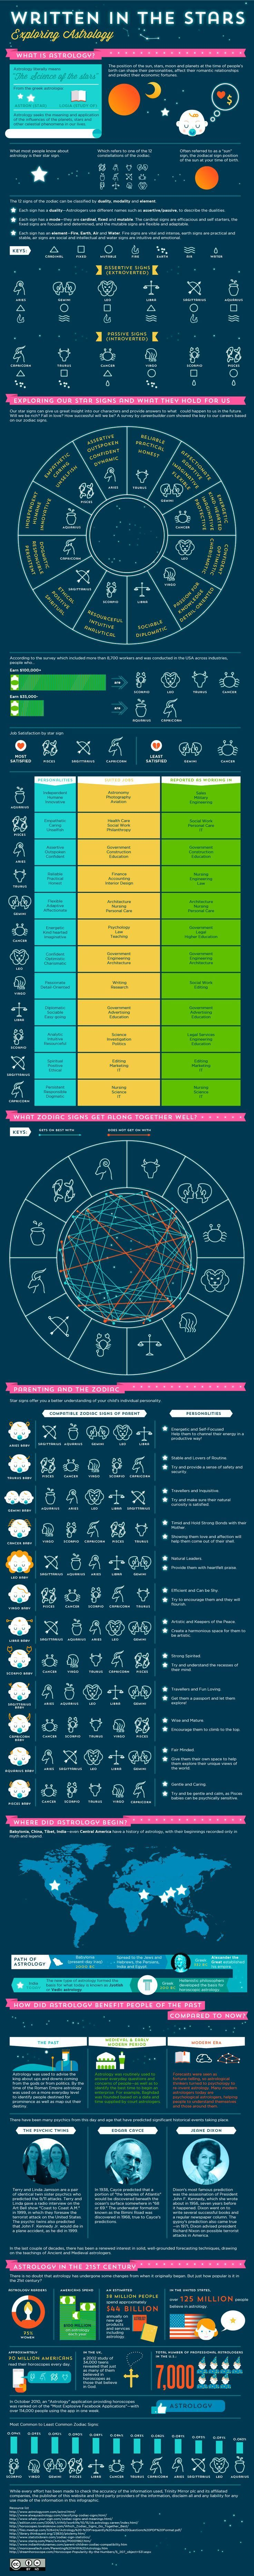 34 best astrologysky images on pinterest astrology chart astrology 101 people from mirror horoscopes team compiled this infographic in an effort to give us a better understanding of what each star sign means in nvjuhfo Images